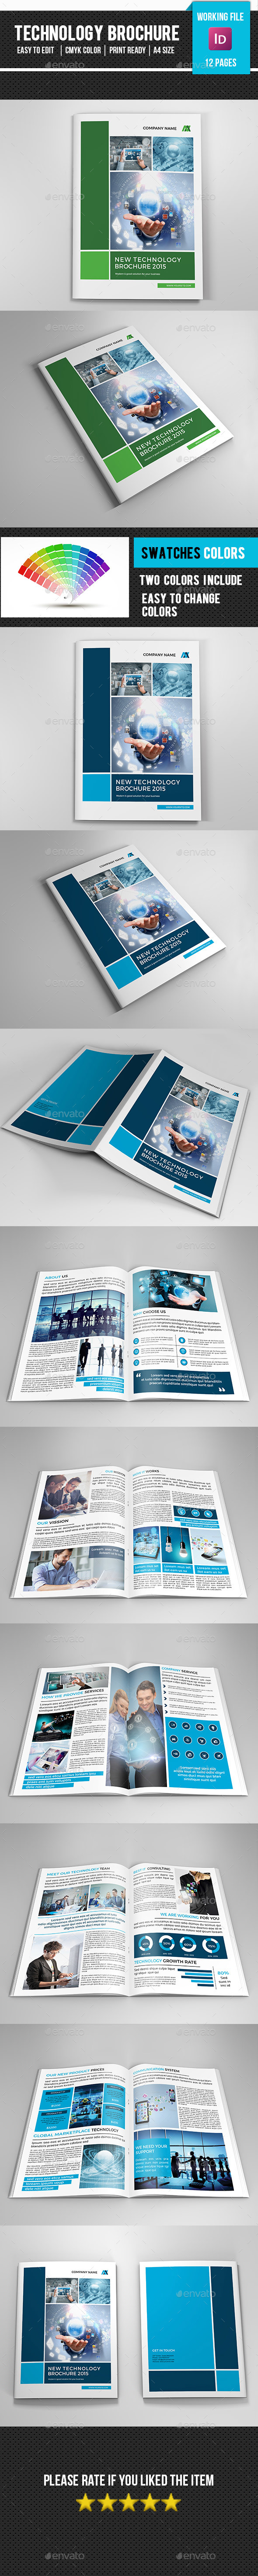 Corporate Technology Brochure-V314 - Corporate Brochures